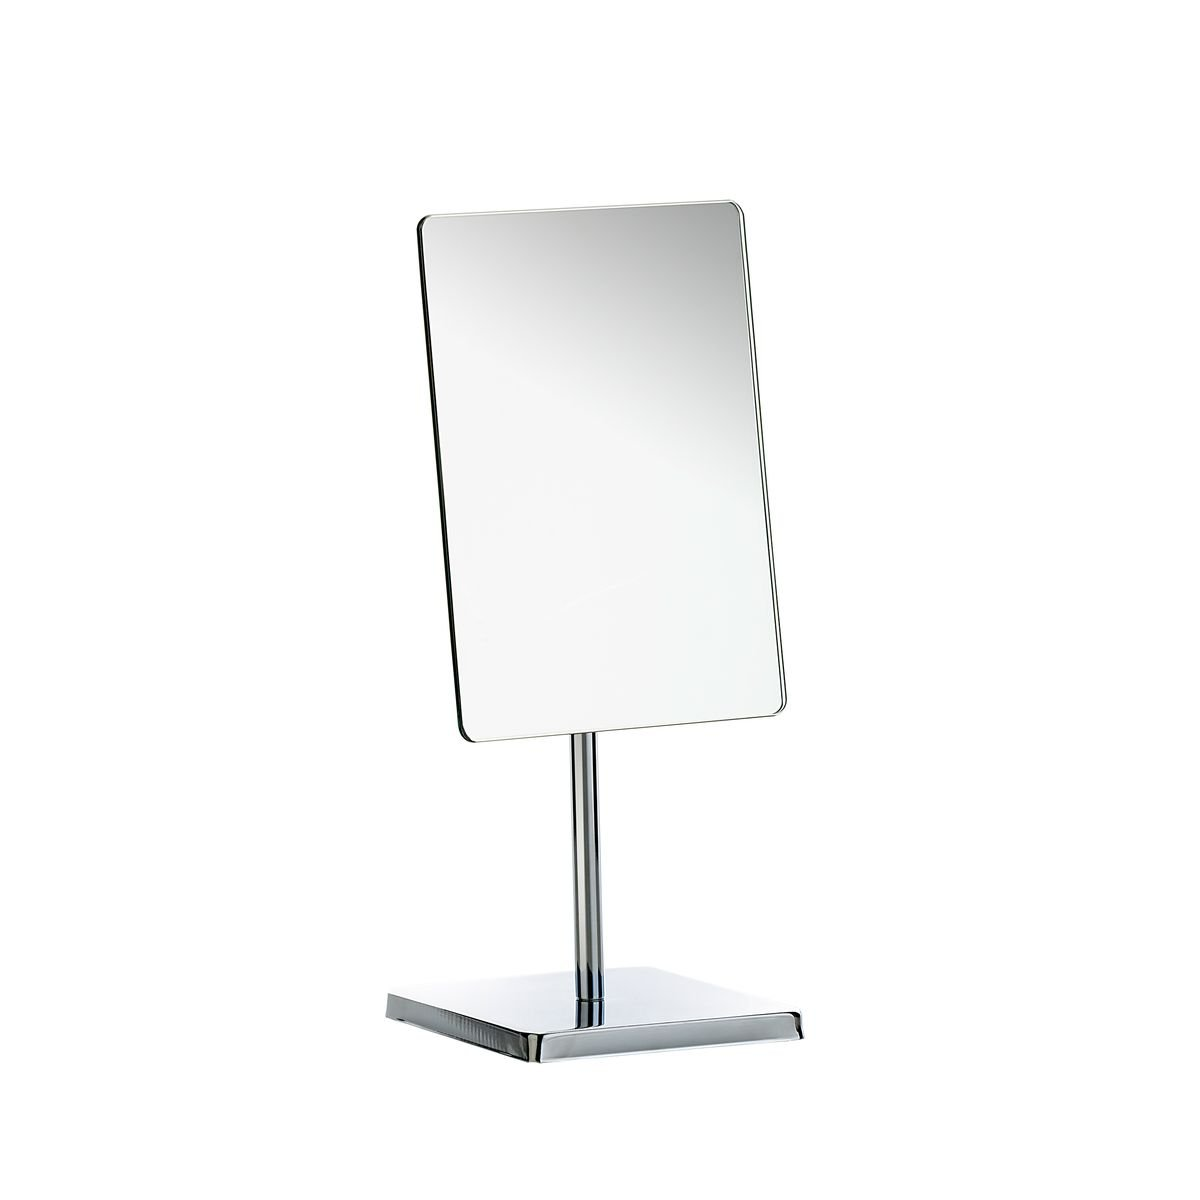 Axentia LED Cosmetic Mirror Pedestal Mirror Rectangular Table Mirror with Base Bathroom Vanity Mirror 16.5 x 23 x 14 cm Metal Silver 126807